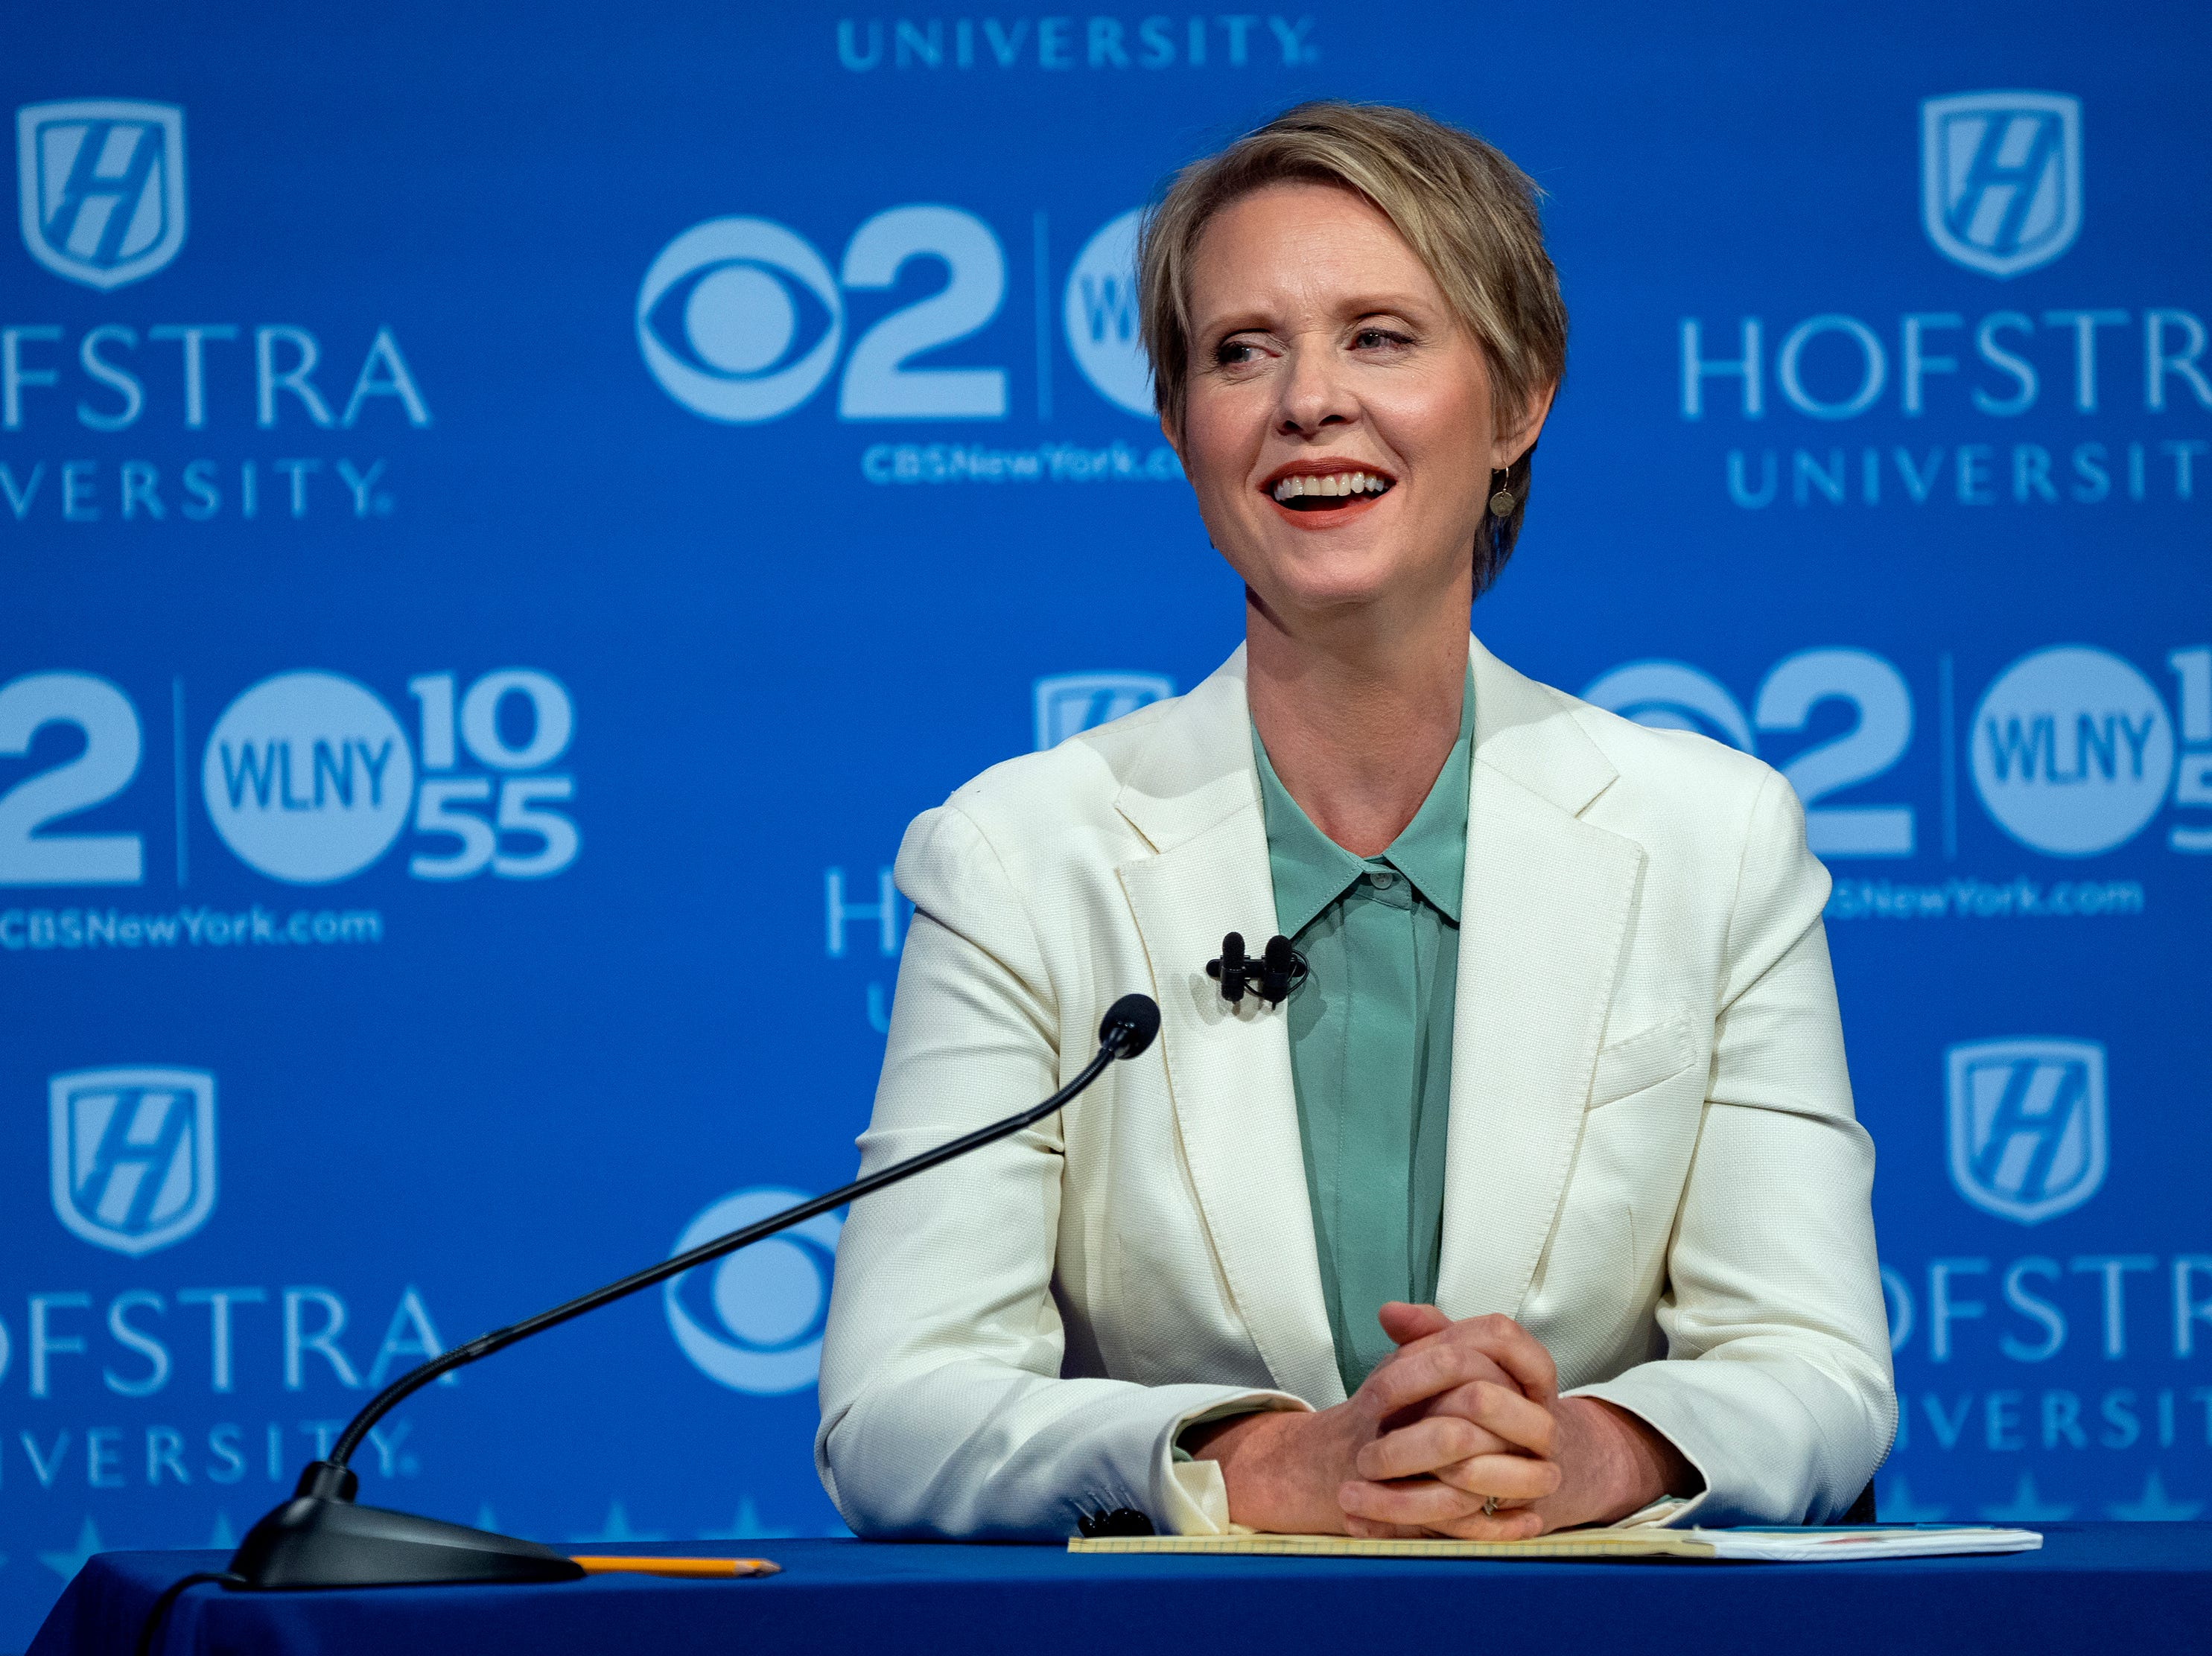 Democratic New York gubernatorial candidate Cynthia Nixon reacts during a gubernatorial debate with New York Gov. Andrew Cuomo at Hofstra University in Hempstead, N.Y., Wednesday, Aug. 29, 2018. (AP Photo/Craig Ruttle, Pool)